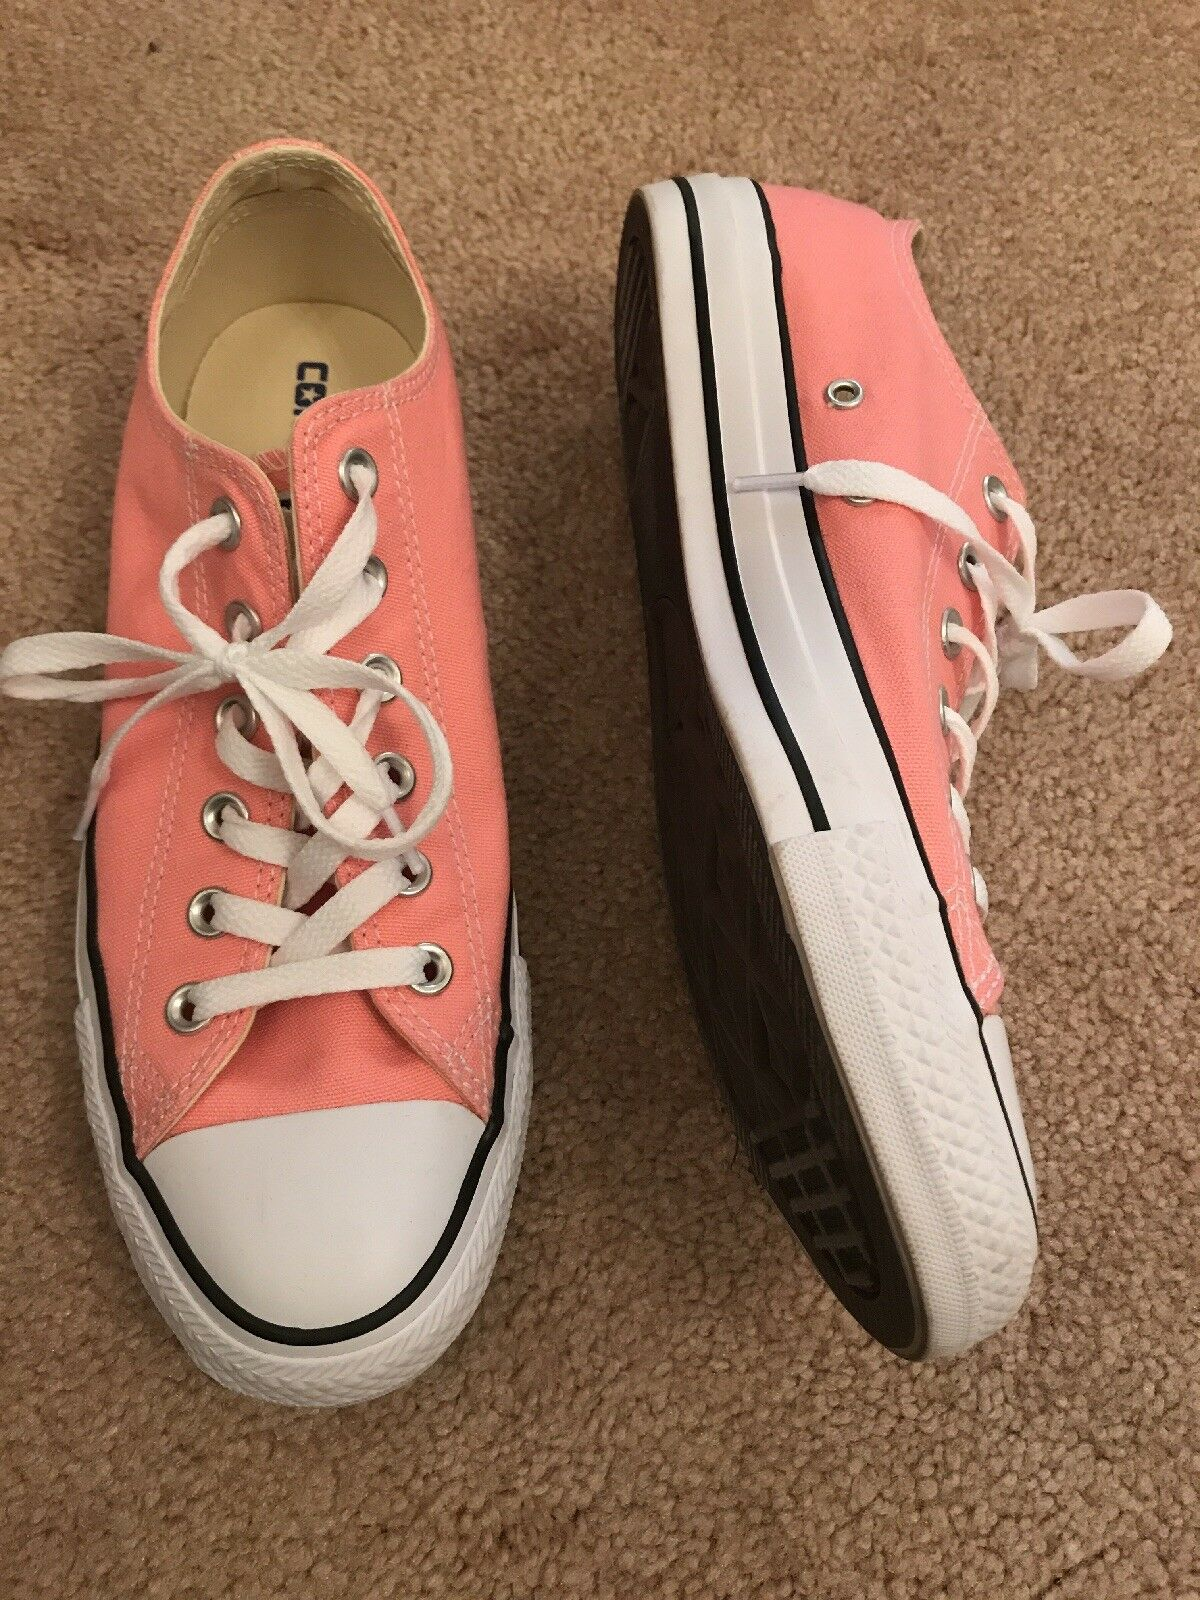 CONVERSE Light Pink Chuck Taylor Tennis shoes 8 Mens 10 Women Discontinued color